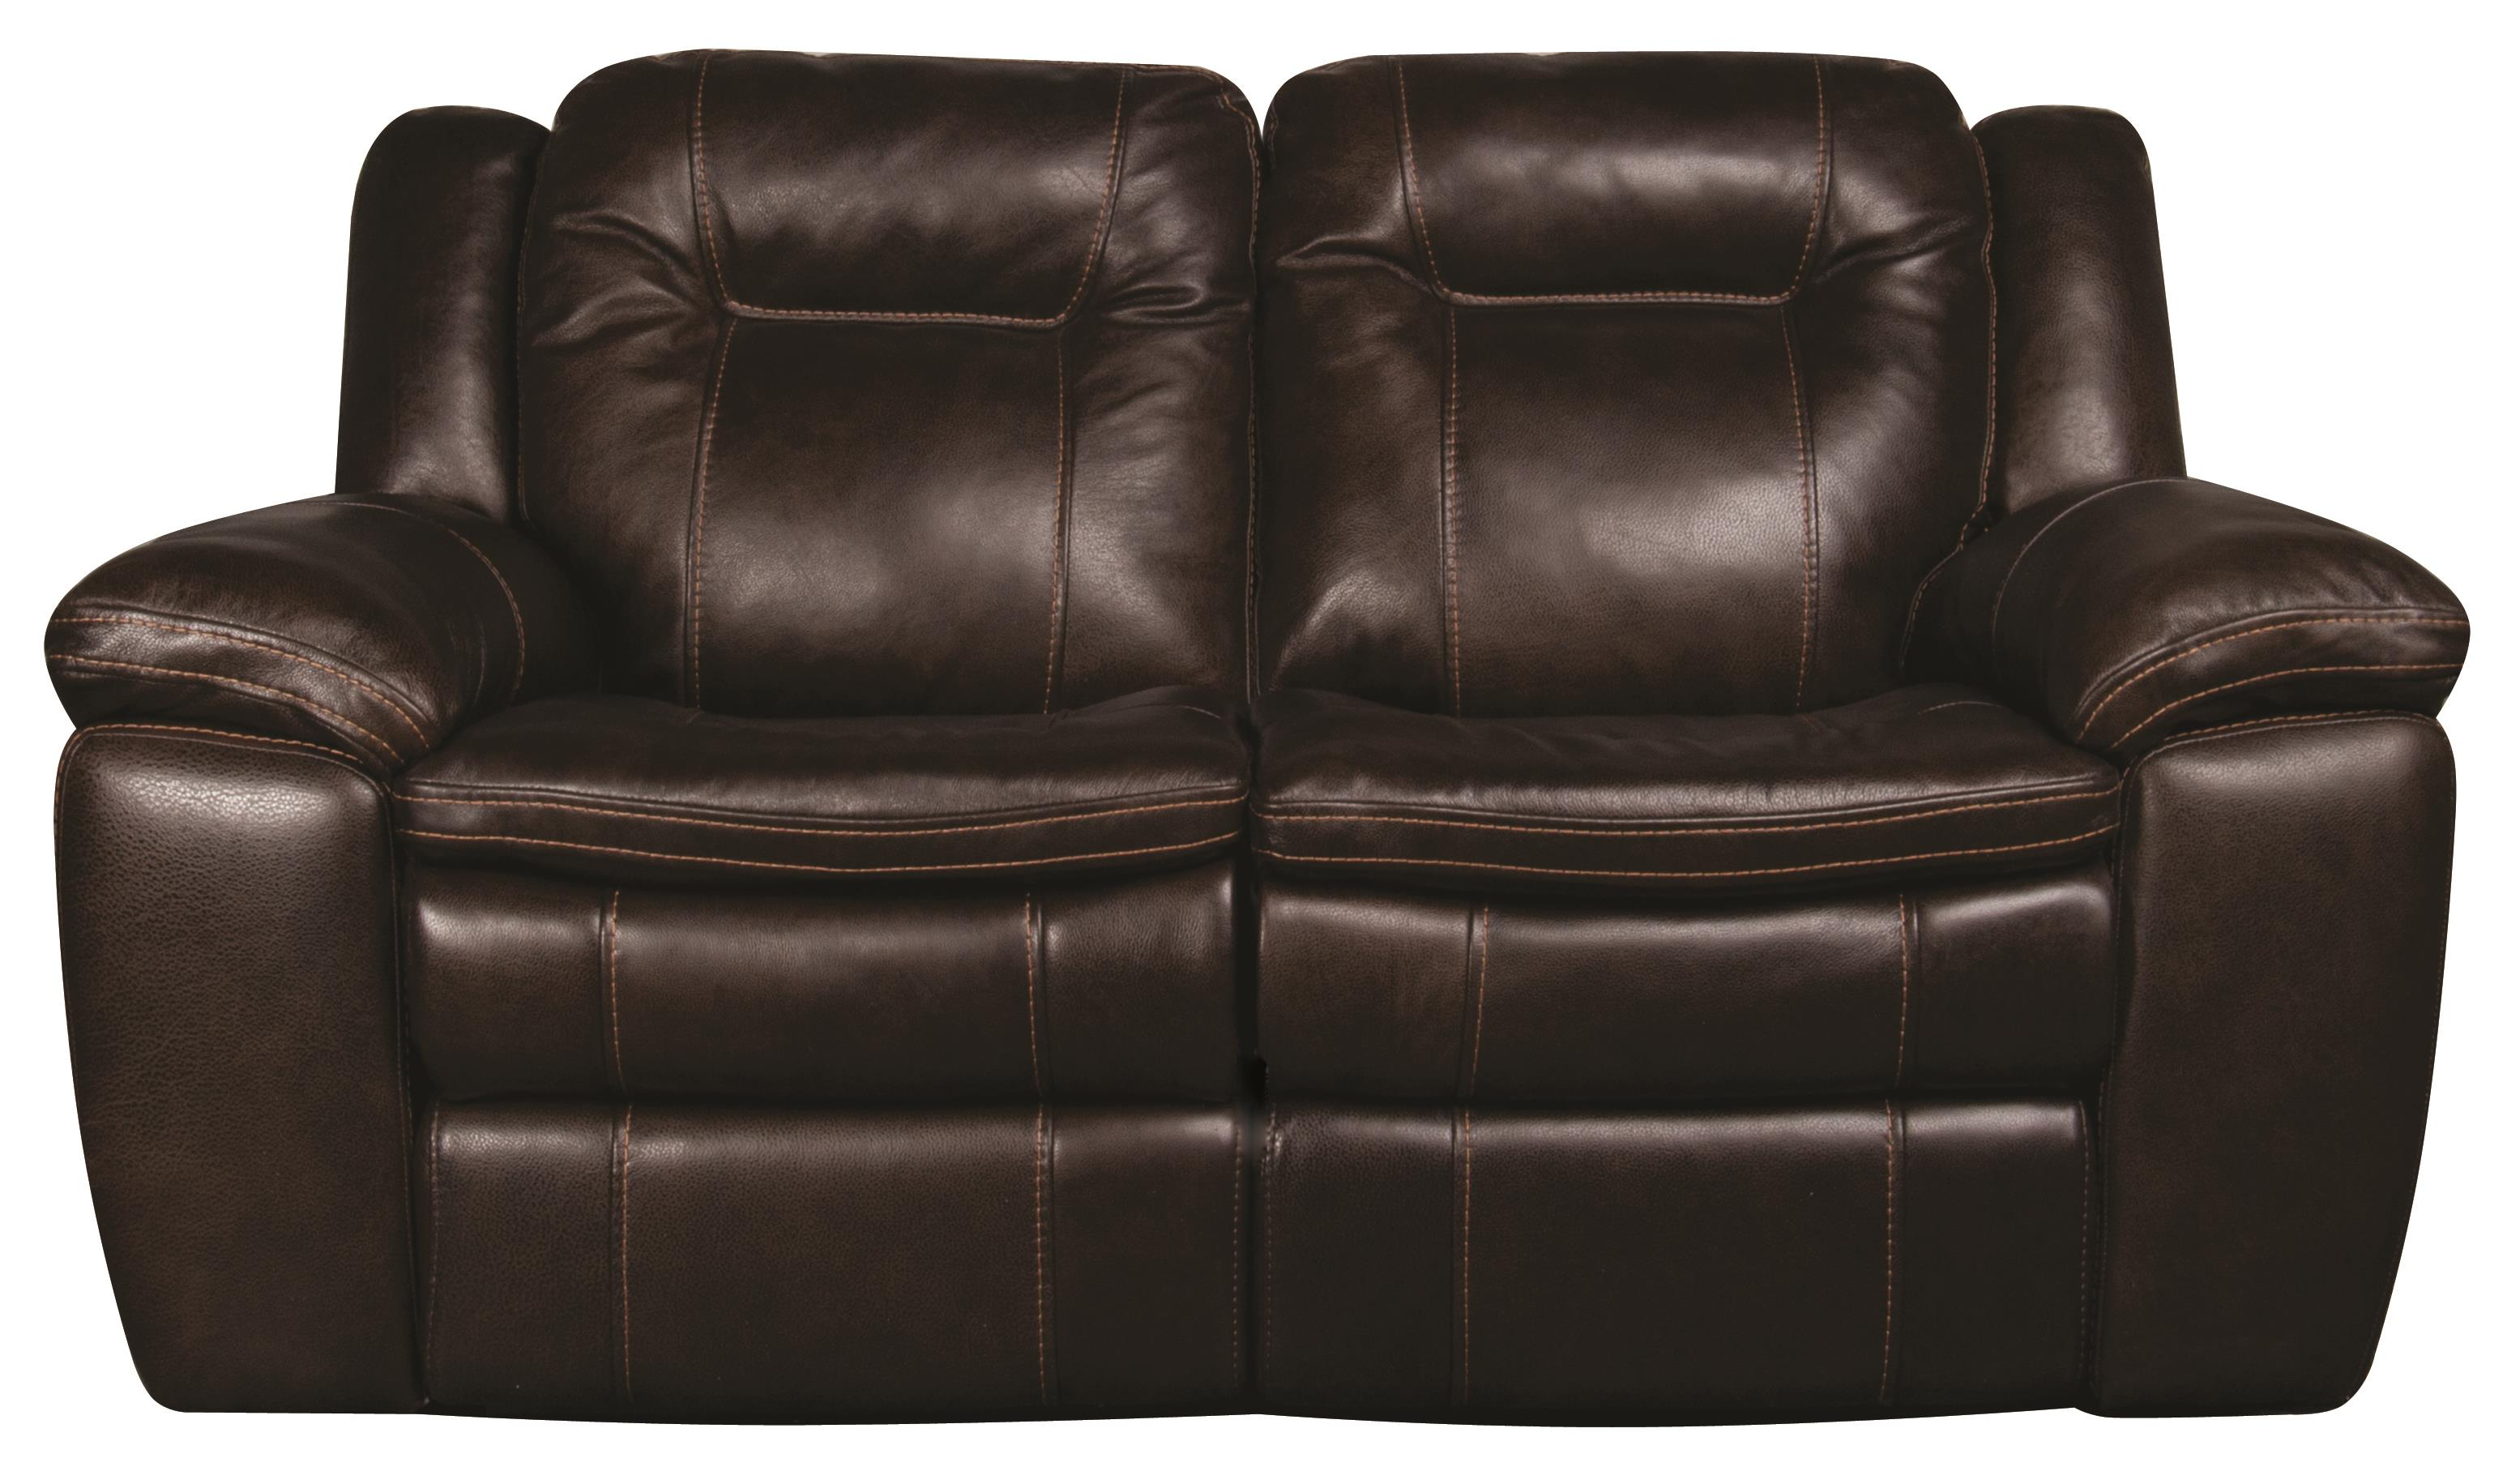 Morris Home Furnishings Heath Heath PWR Leather-Match* Loveseat - Item Number: 559310482